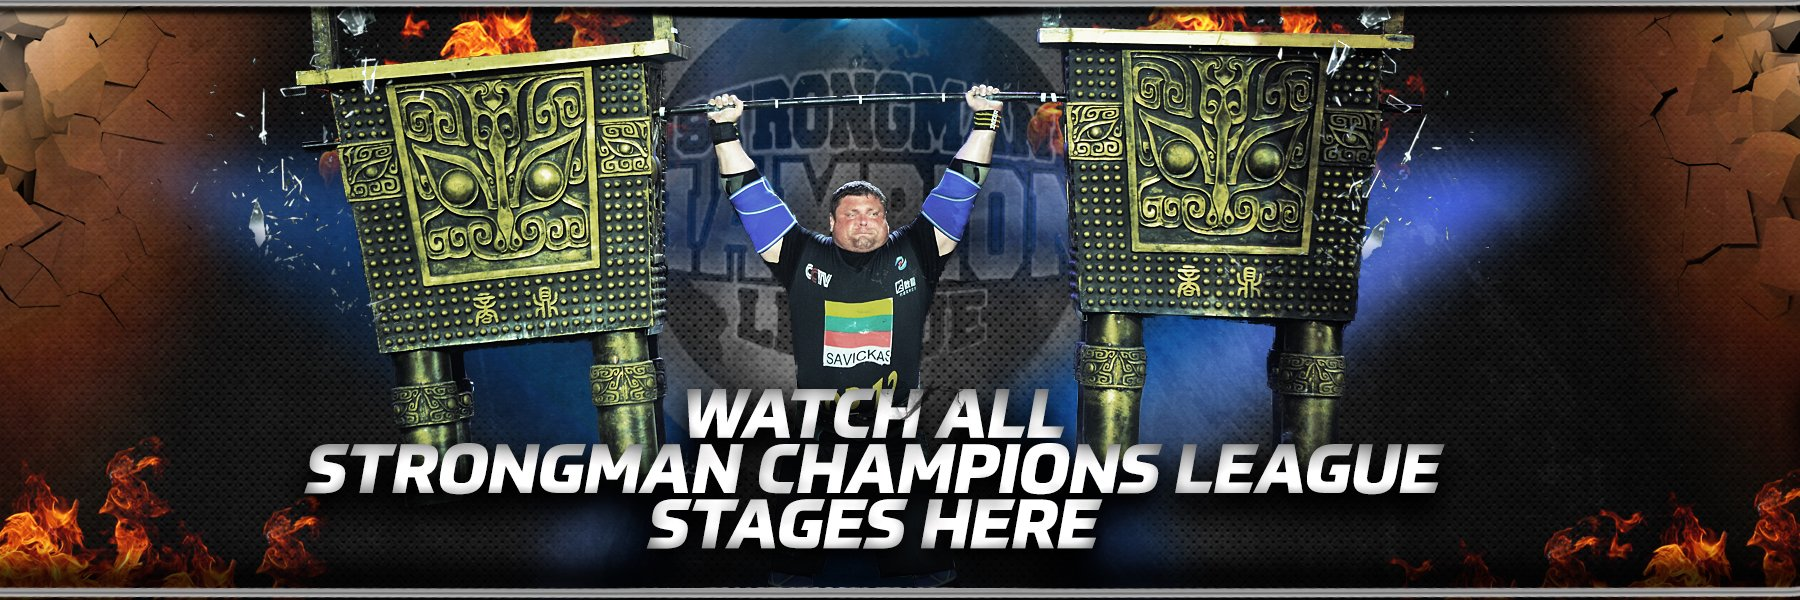 STRONGMAN WORLD SERIES | Watch us! Anytime , Anywhere , All over the World!             | Watch Online Videos Free for 2 weeks